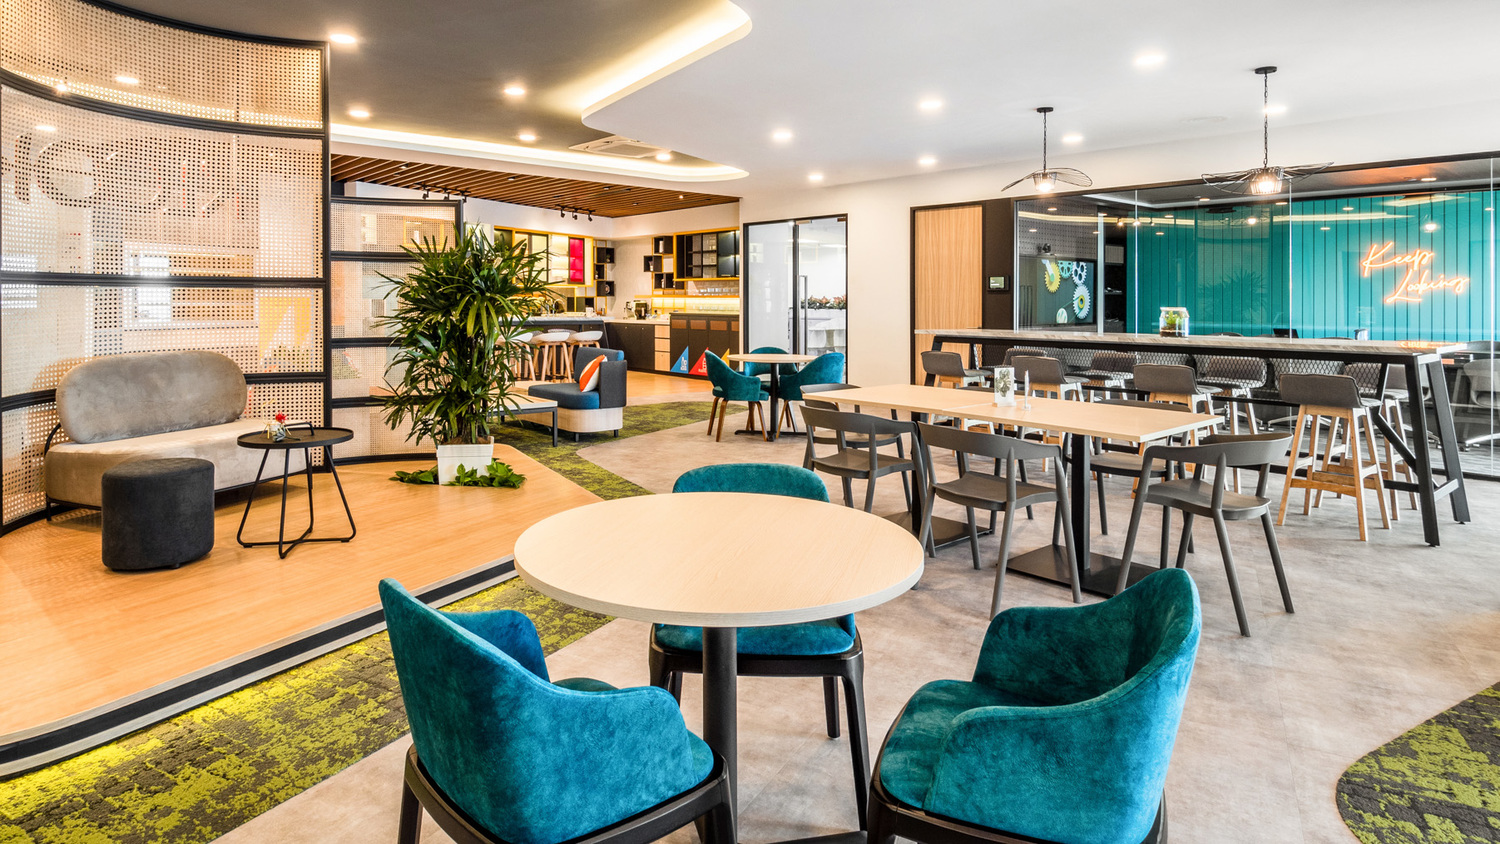 Chair, Furniture, Restaurant, Cafeteria, Cafe, Room, Indoors, Lobby